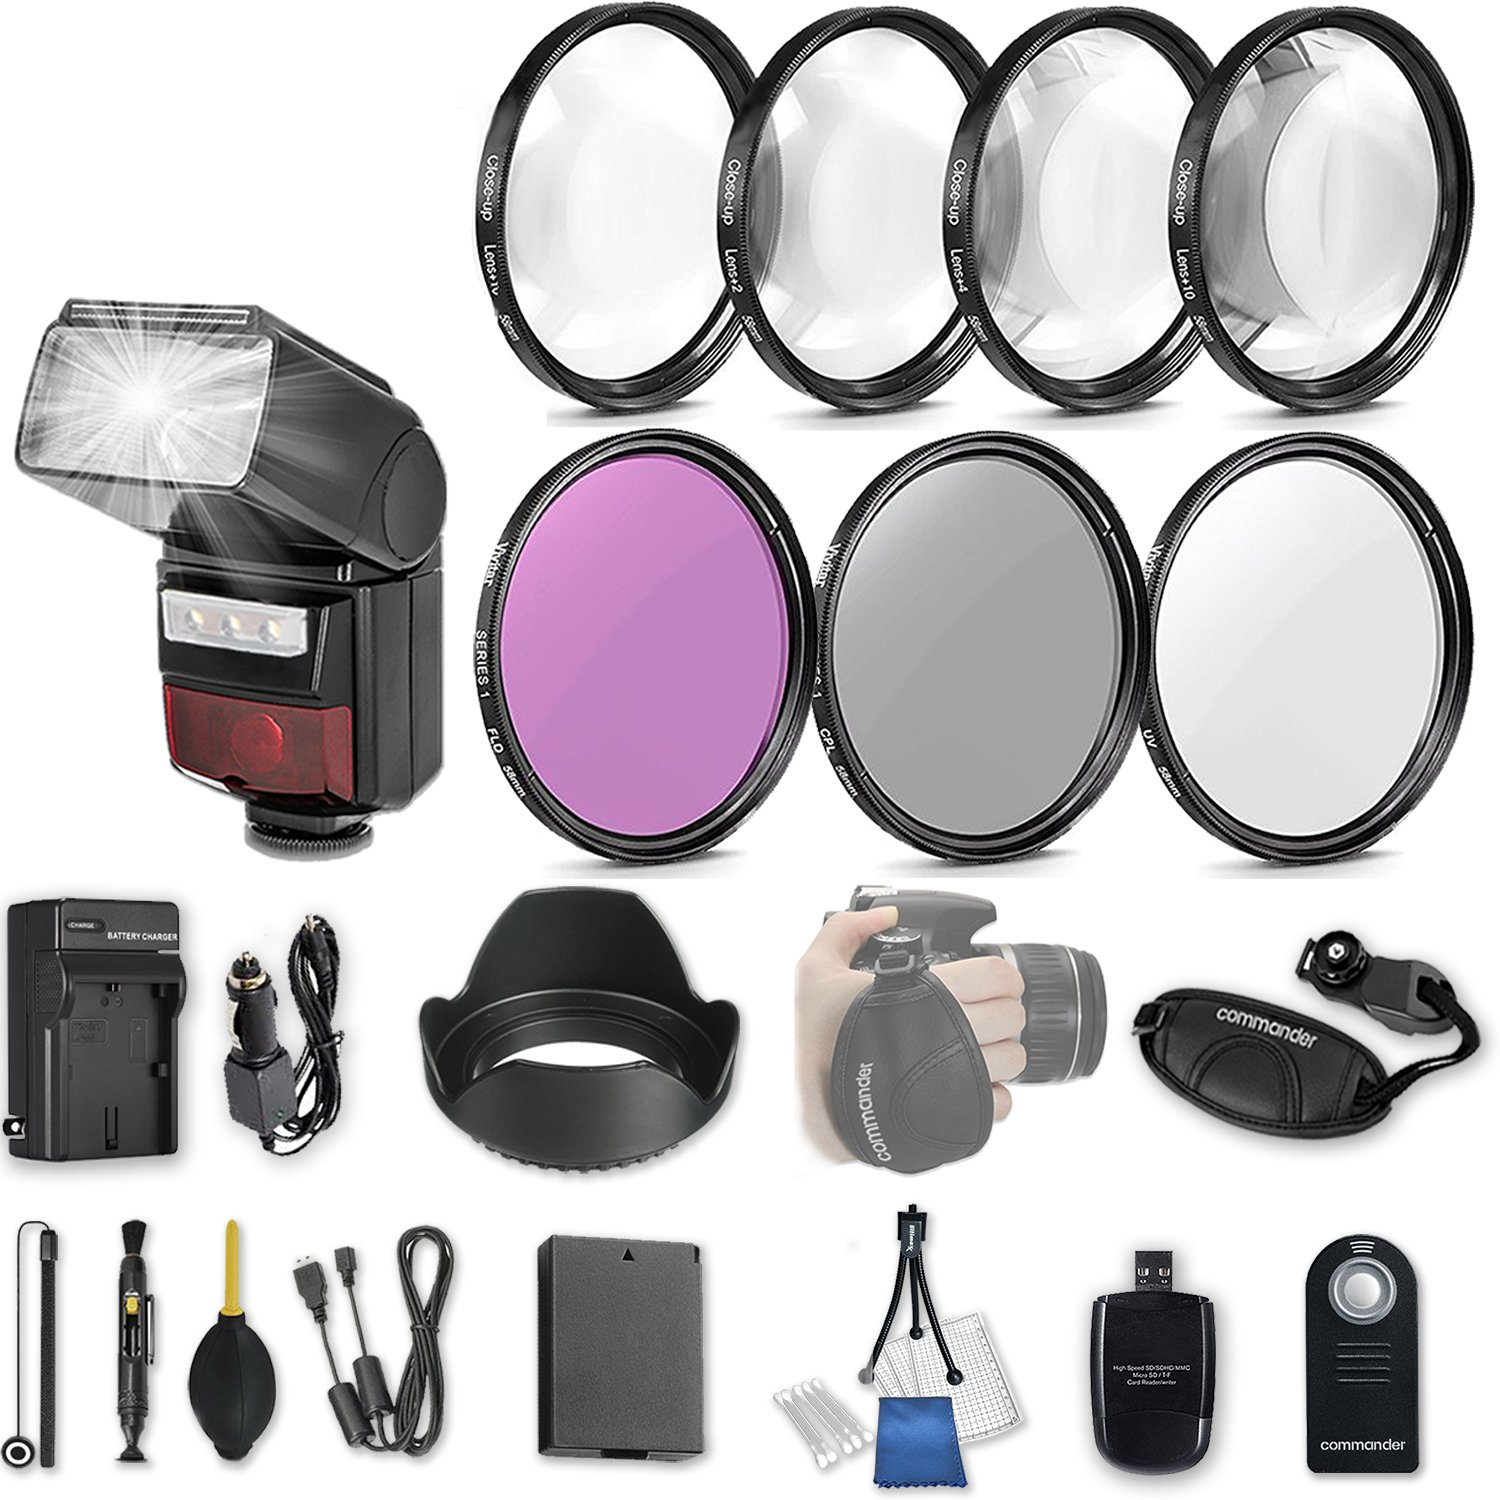 58mm 21 Pc Accessory Kit for Canon EOS Rebel T6, T5, T3, 1300D, 1200D, 1100D DSLRs with LED-Flash, UV CPL FLD Filters, & 4 Piece Macro Close-Up Set, Battery, and More